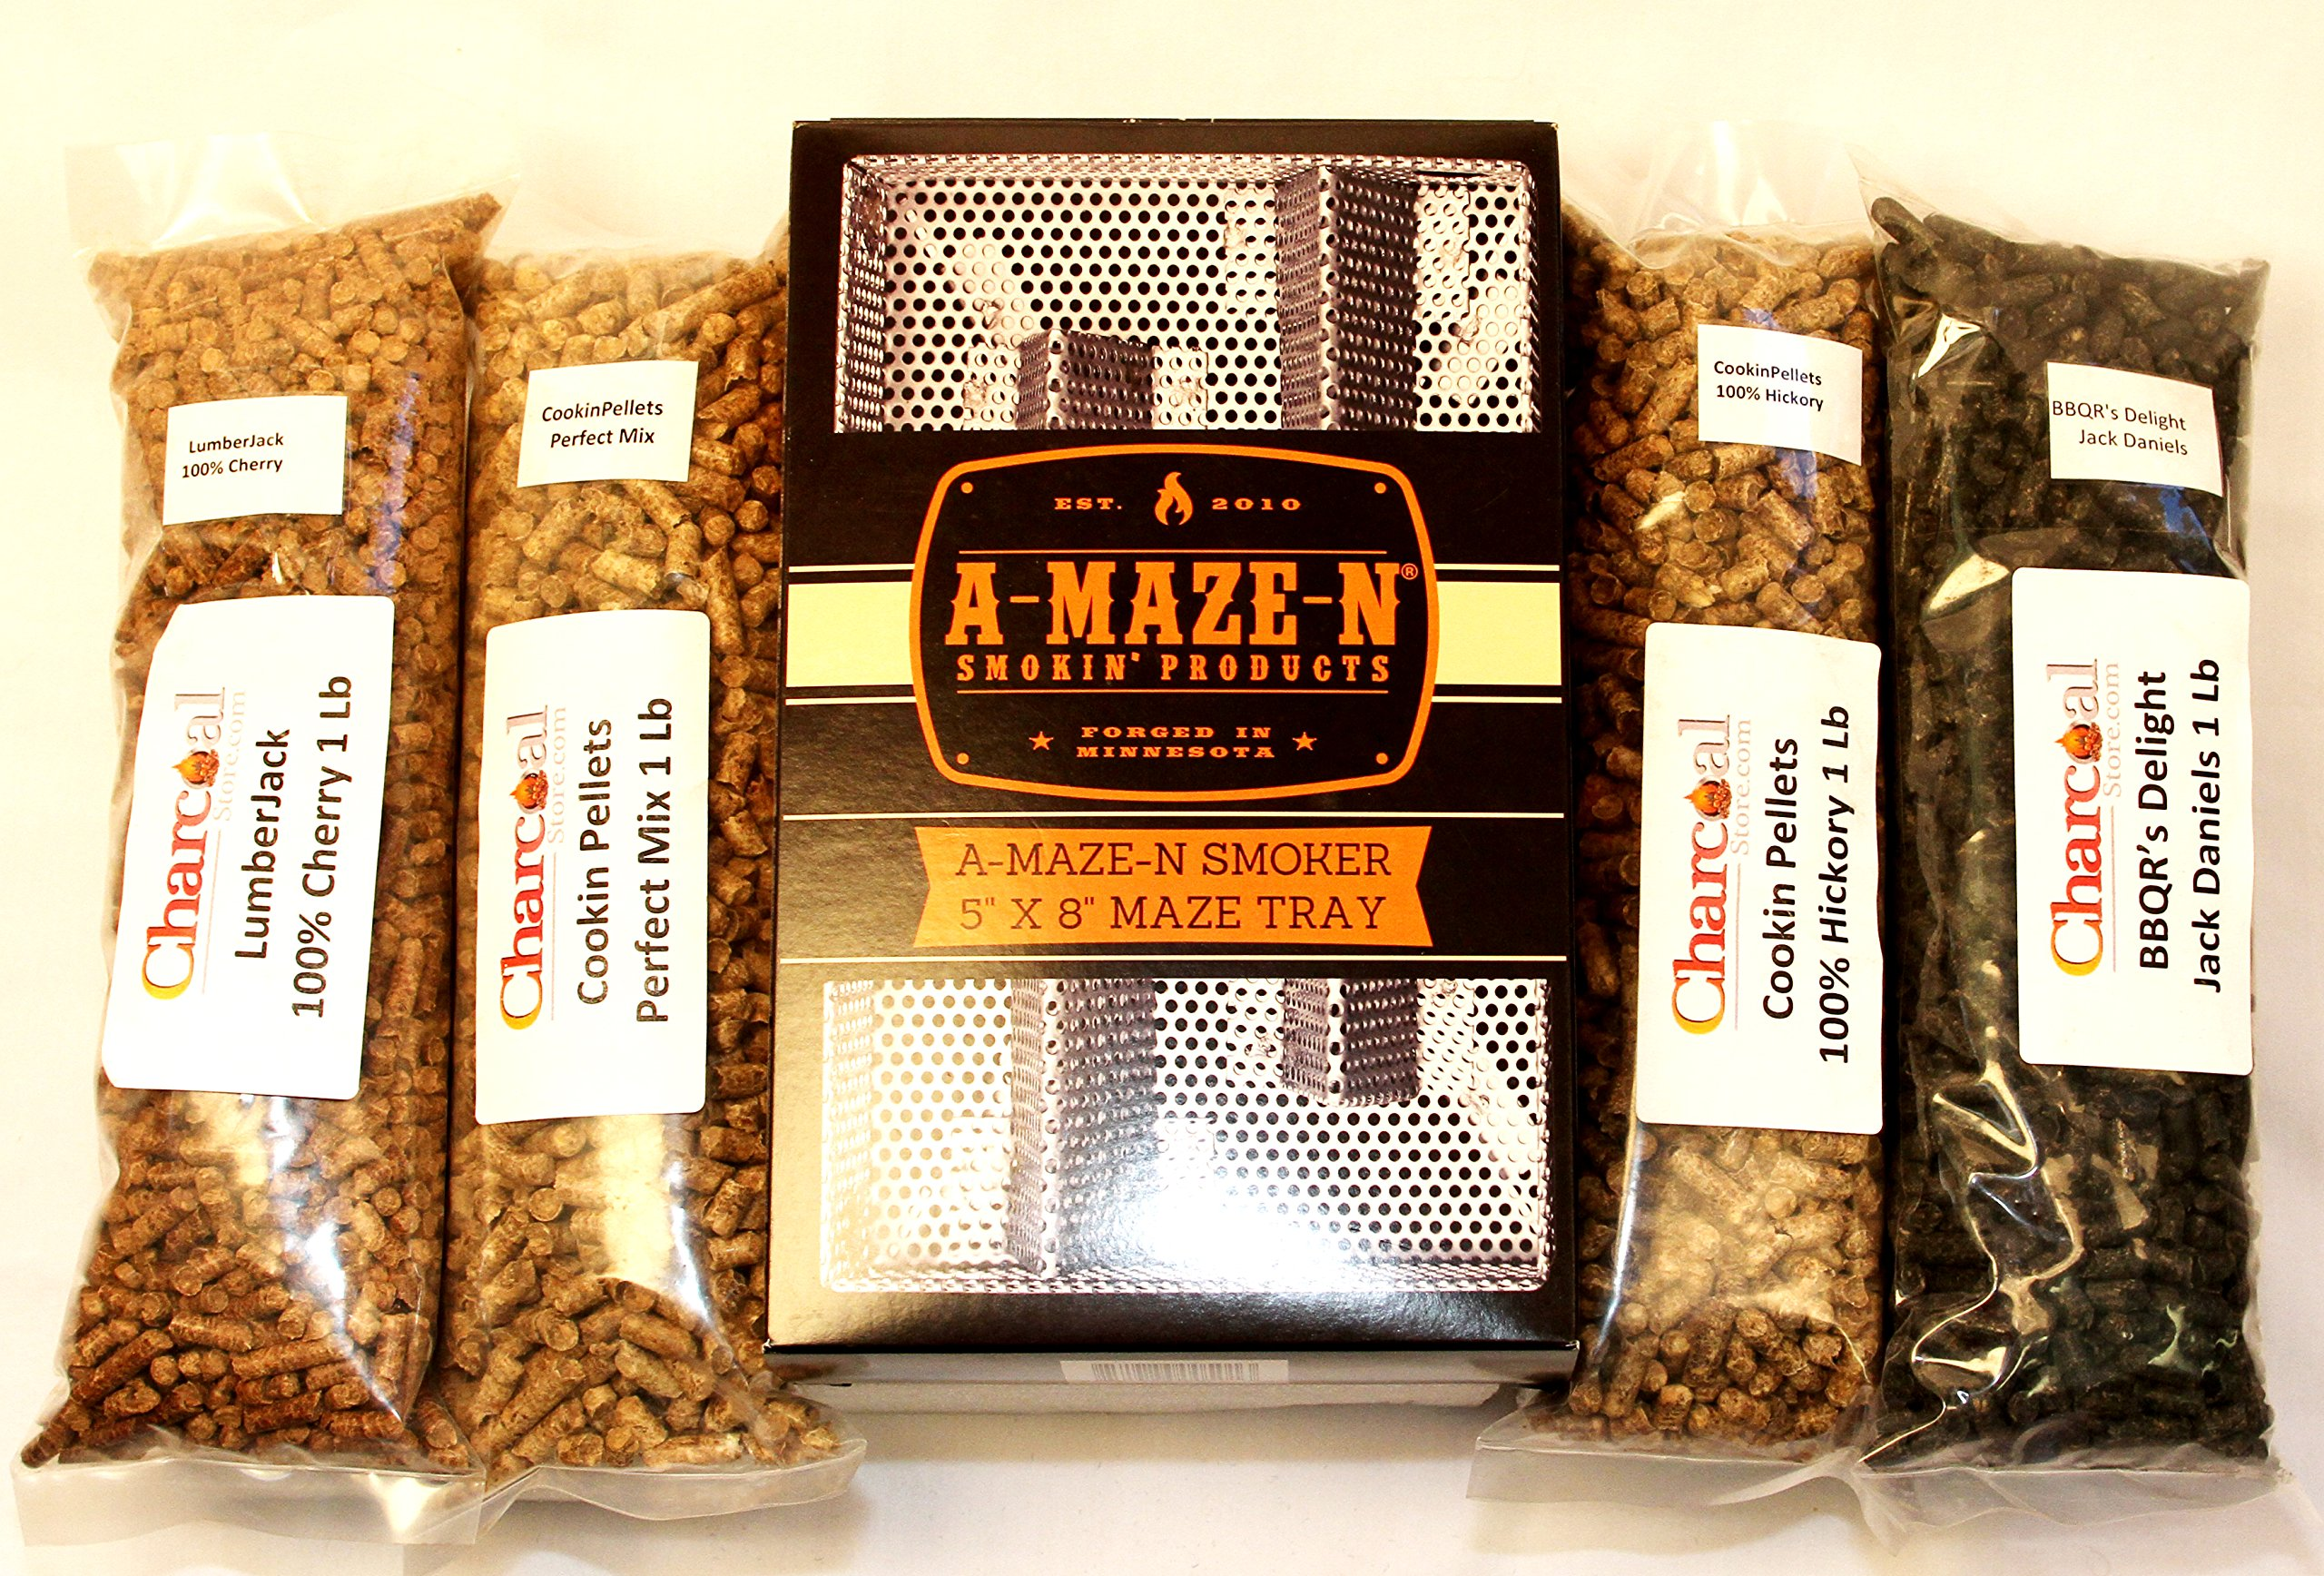 A-MAZE-N Pellet Smoker 5x8 Combo Pack Includes 1 pound ea of Cookin Pellets Perfect Mix, 100% Hickory, 1 Lb BBQR's Delight Jack Daniels and 1 Lb Lumber Jack 100% Cherry by CharcoalStore